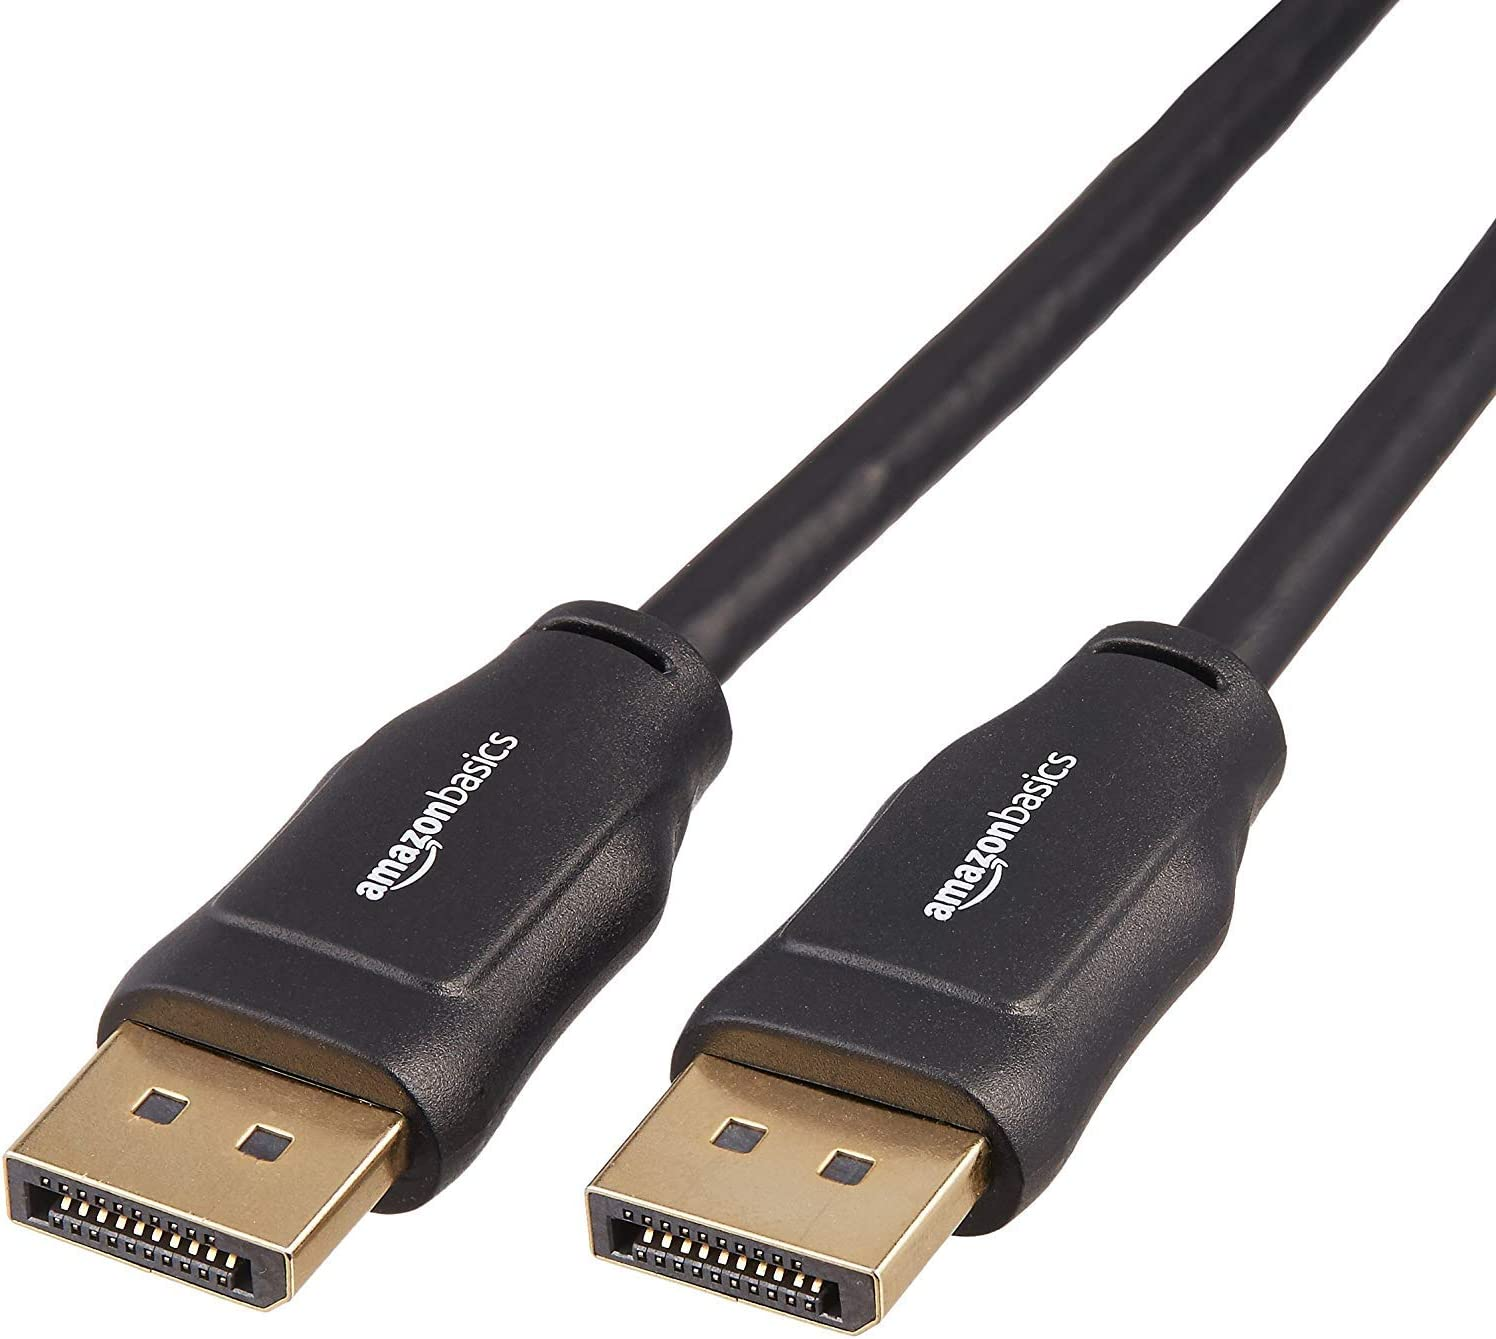 AmazonBasics DisplayPort to DisplayPort Cable 6 Feet